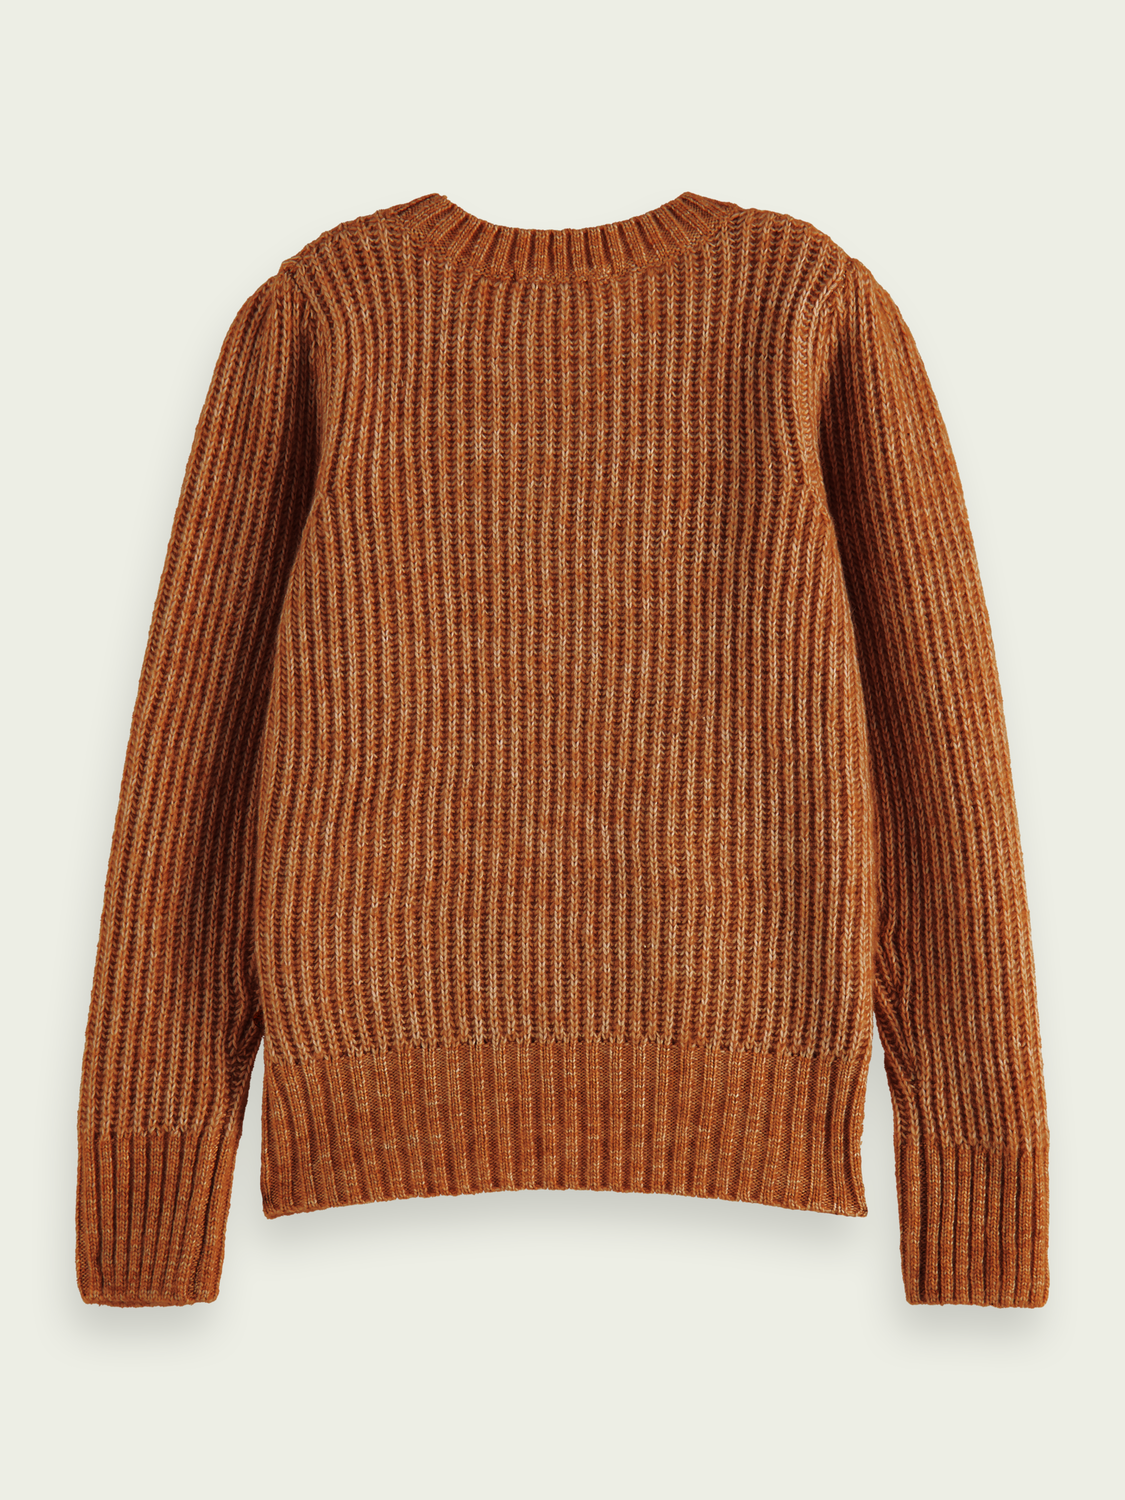 Damen Pullover im Relaxed Fit mit Knotendetail